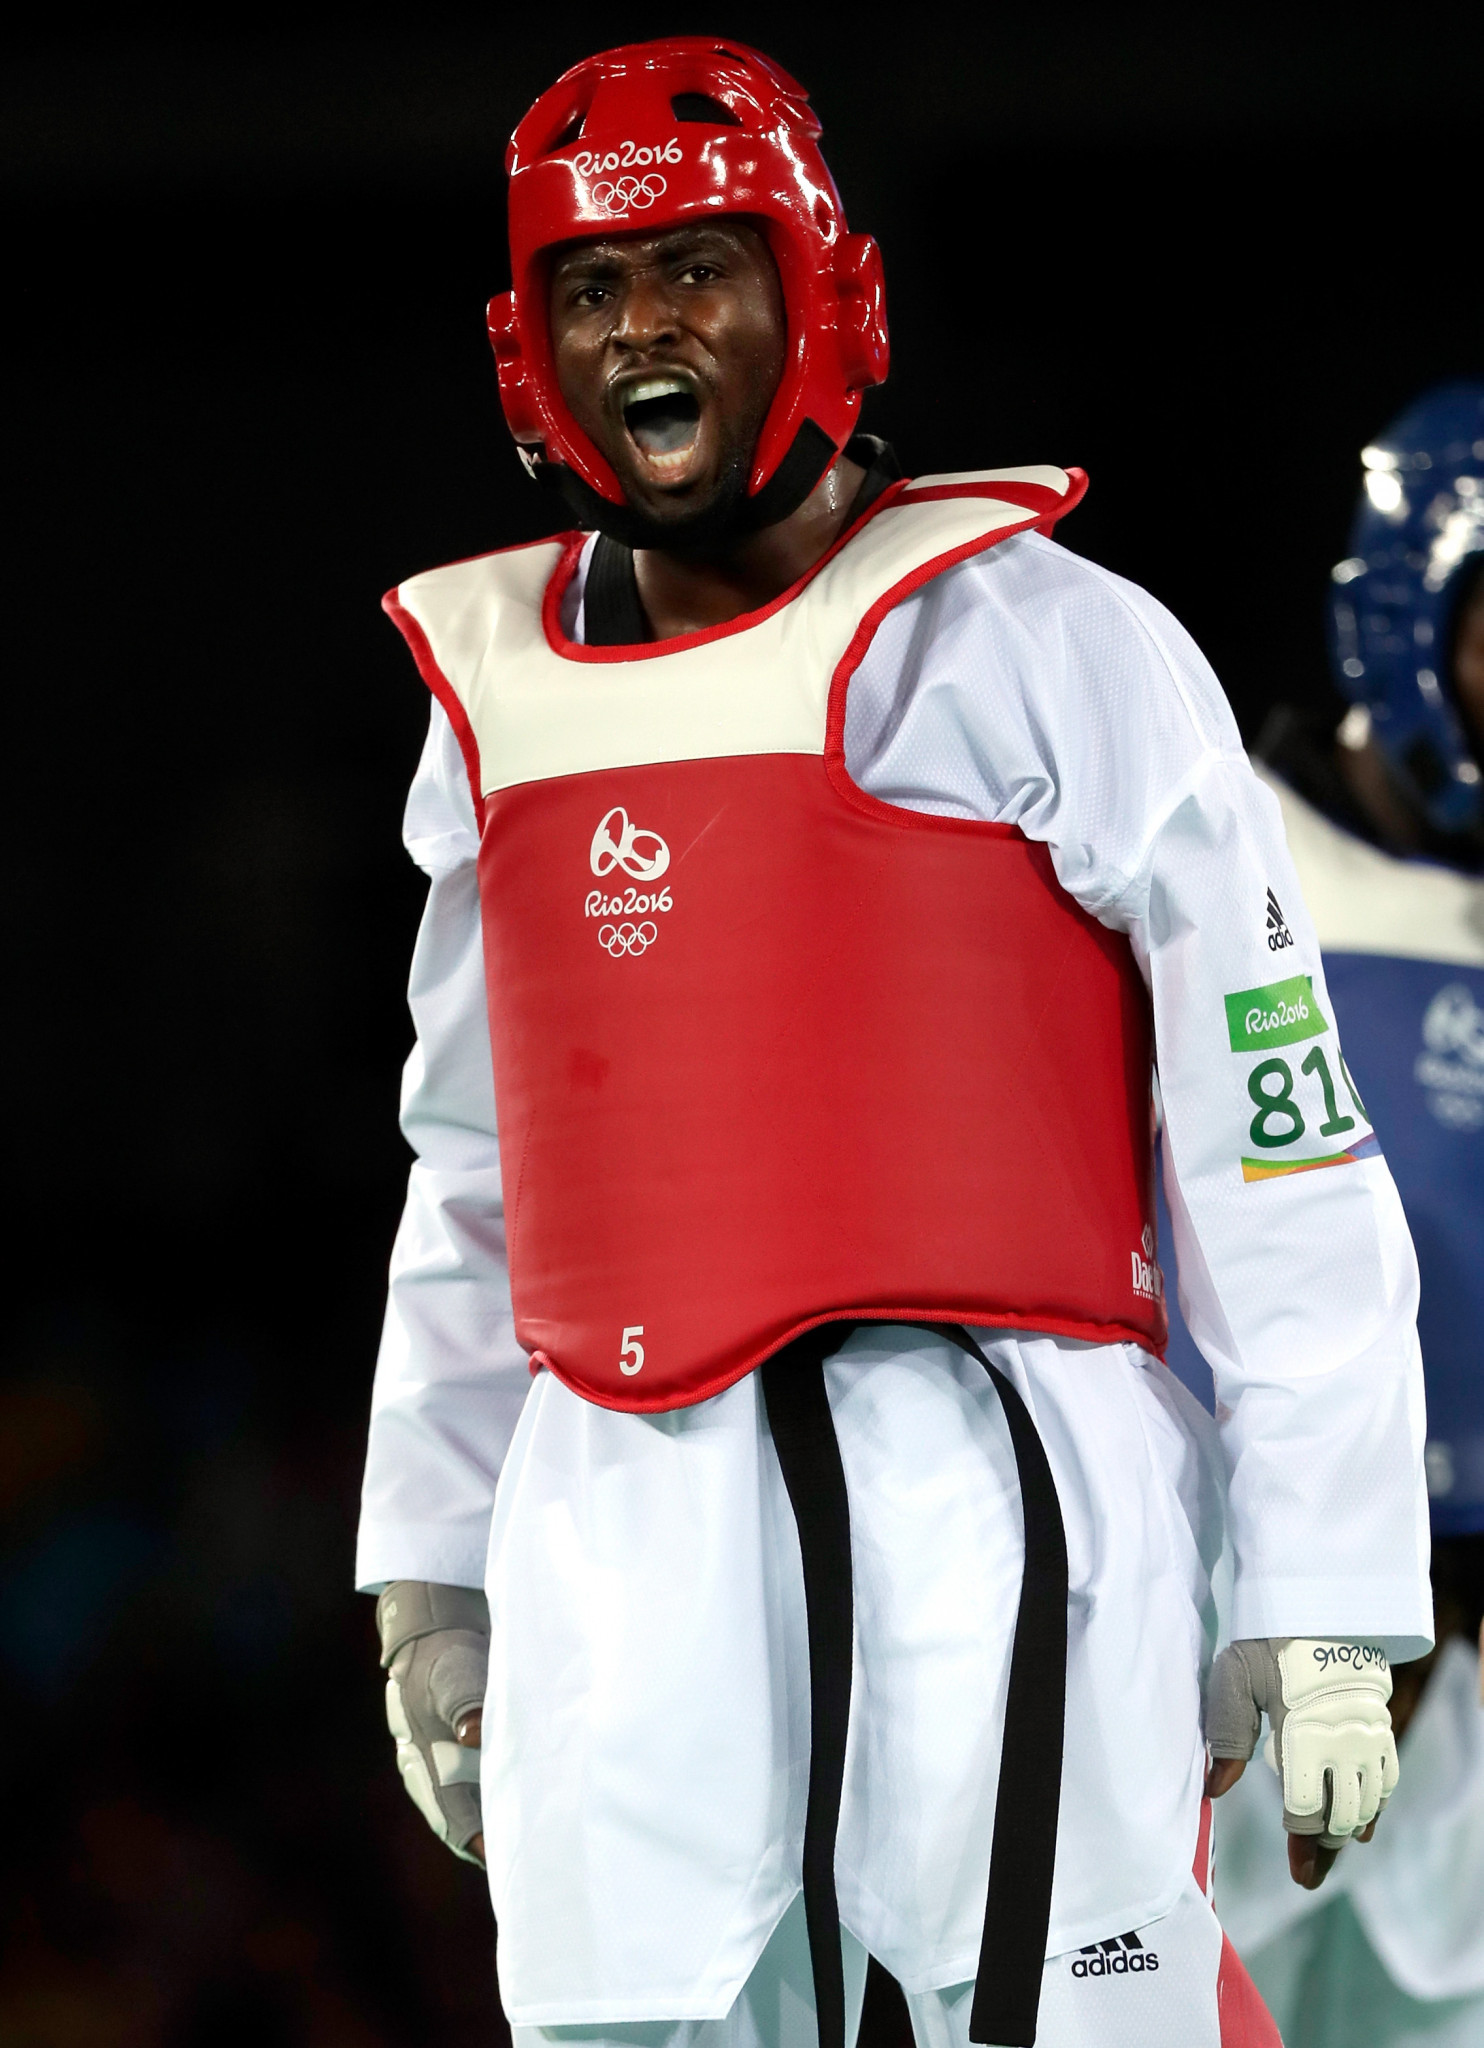 Britain's taekwondo Olympian Mahama Cho, one of eight nominees for the first National Lottery Athlete of the Year prize, has chosen a Manchester refugee project to benefit from the £5,000 if he wins ©Getty Images